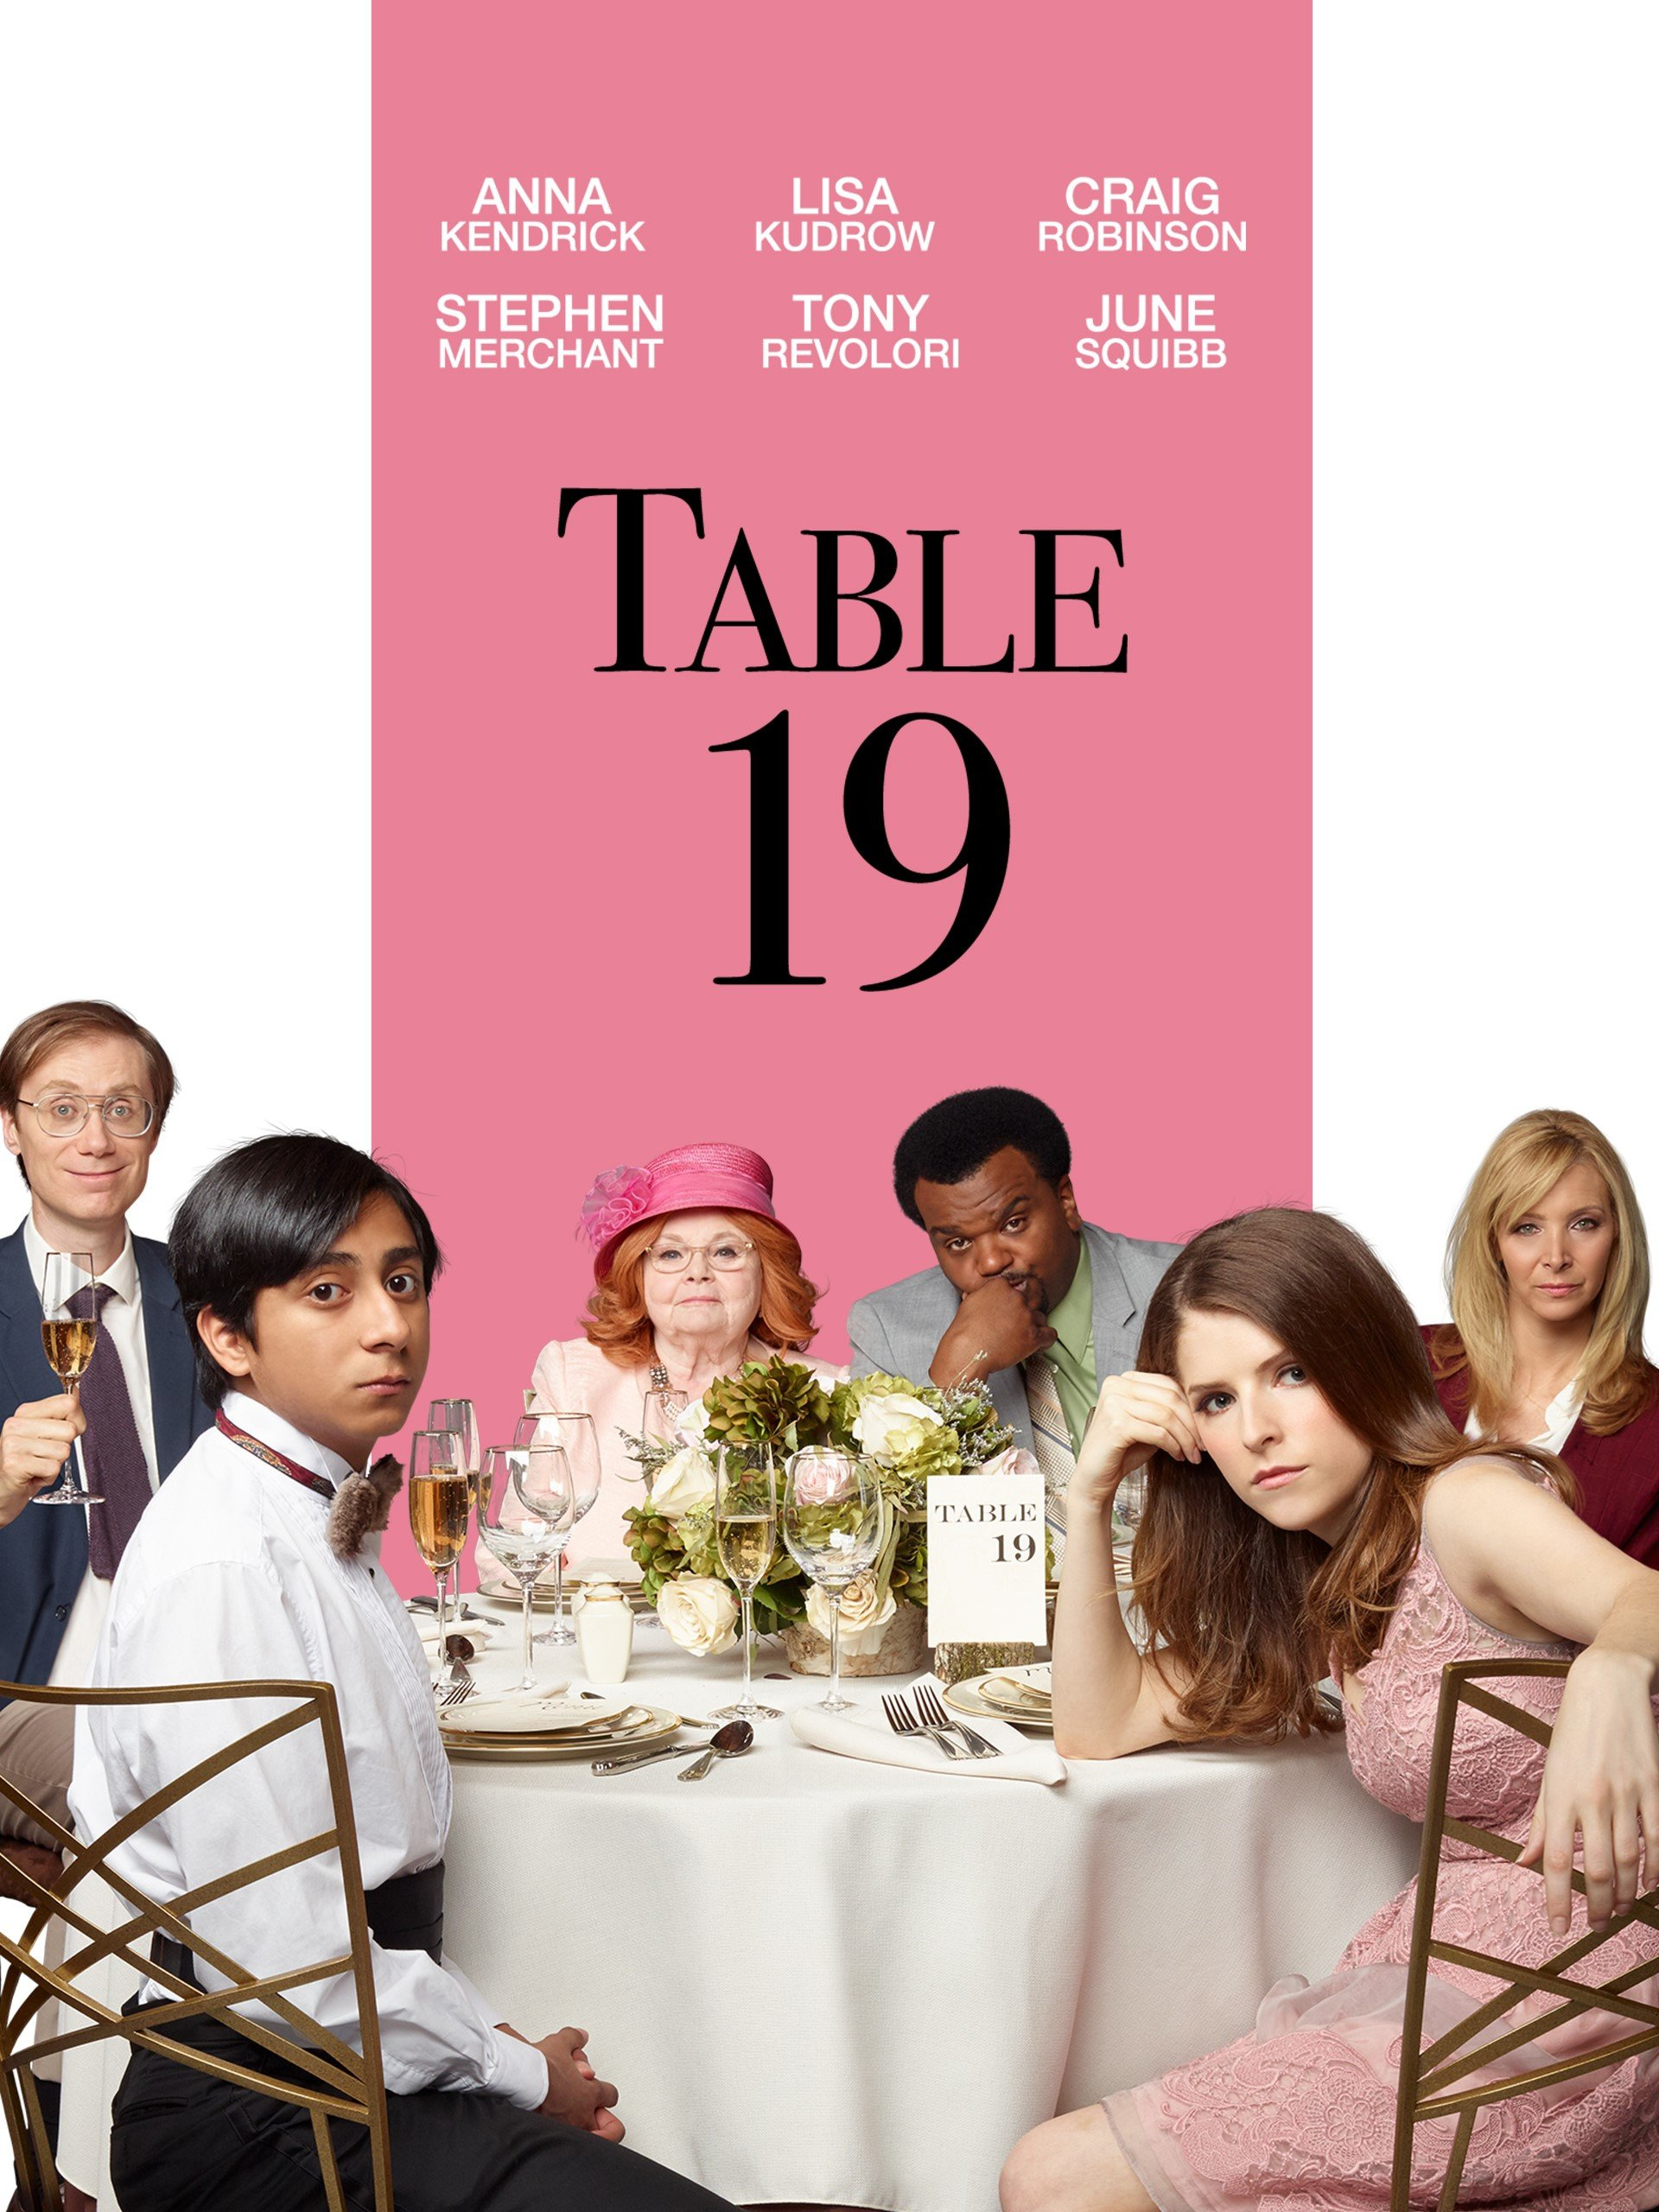 Table 19 by